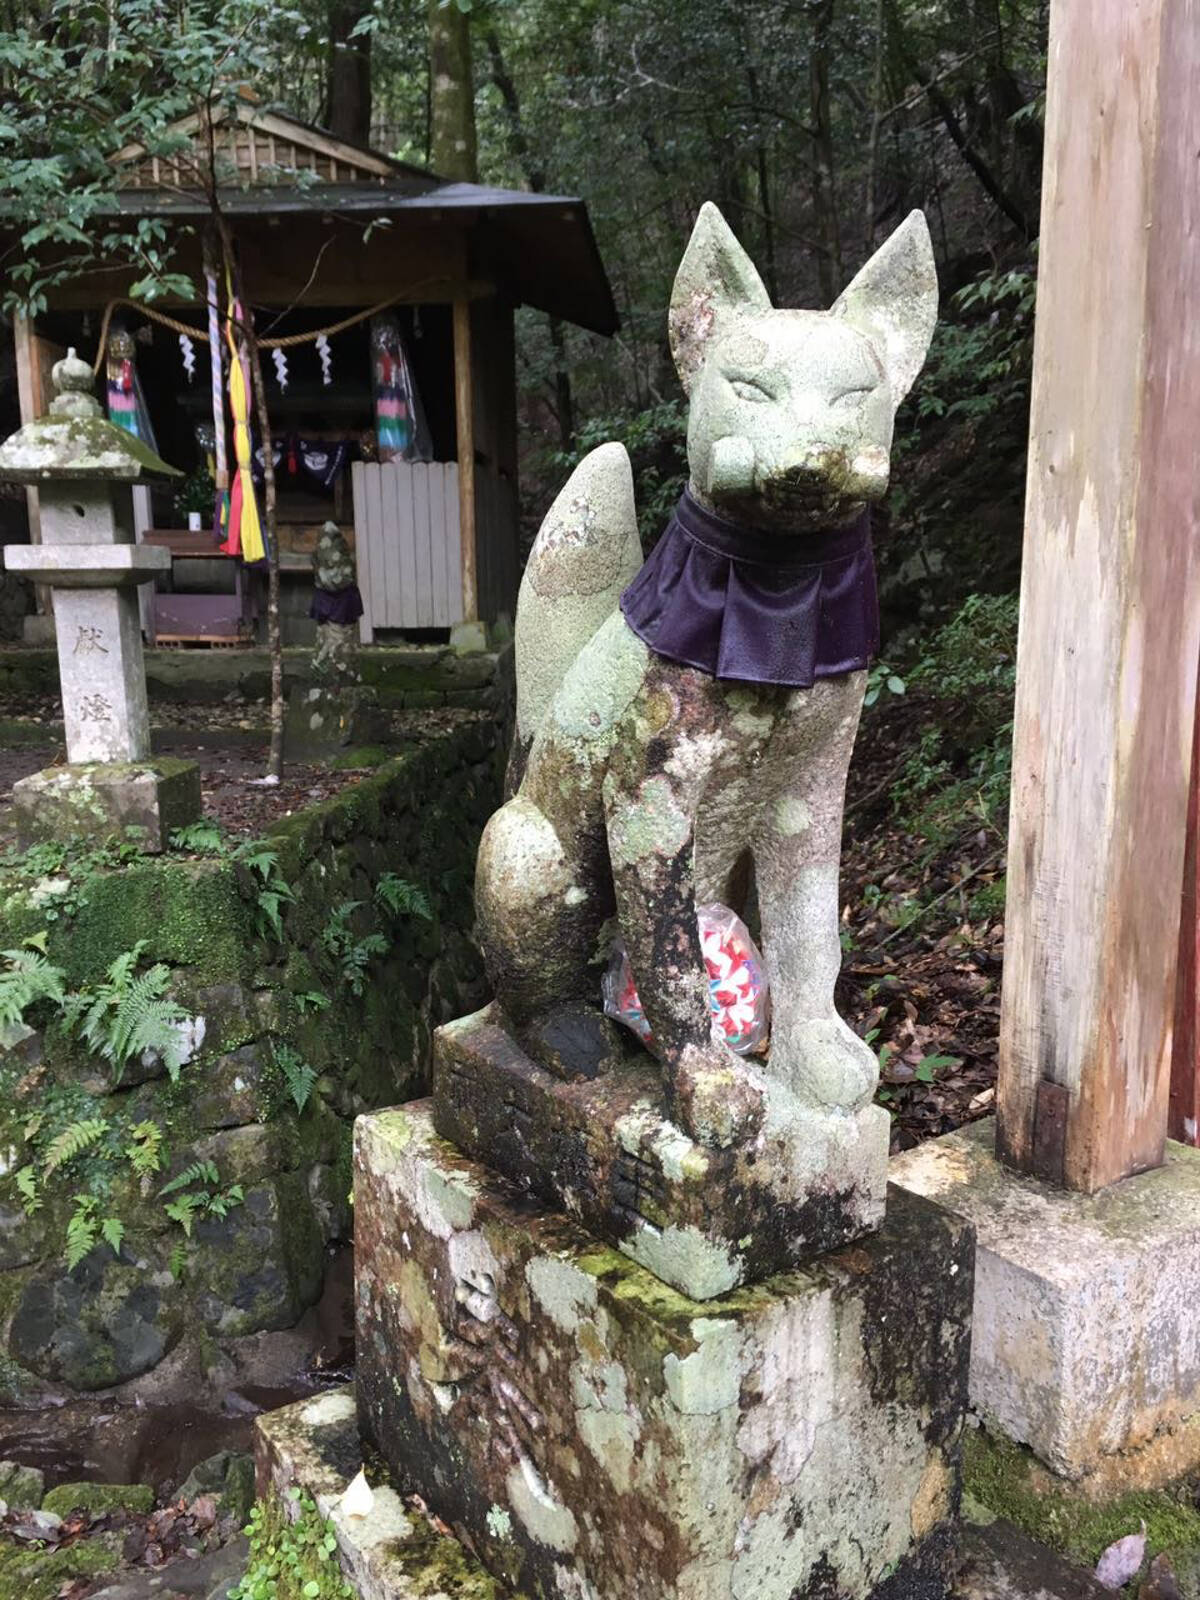 Some had statues on plinths, of foxes, or owls or dragons, which immediately made clear what kami was being worshipped.